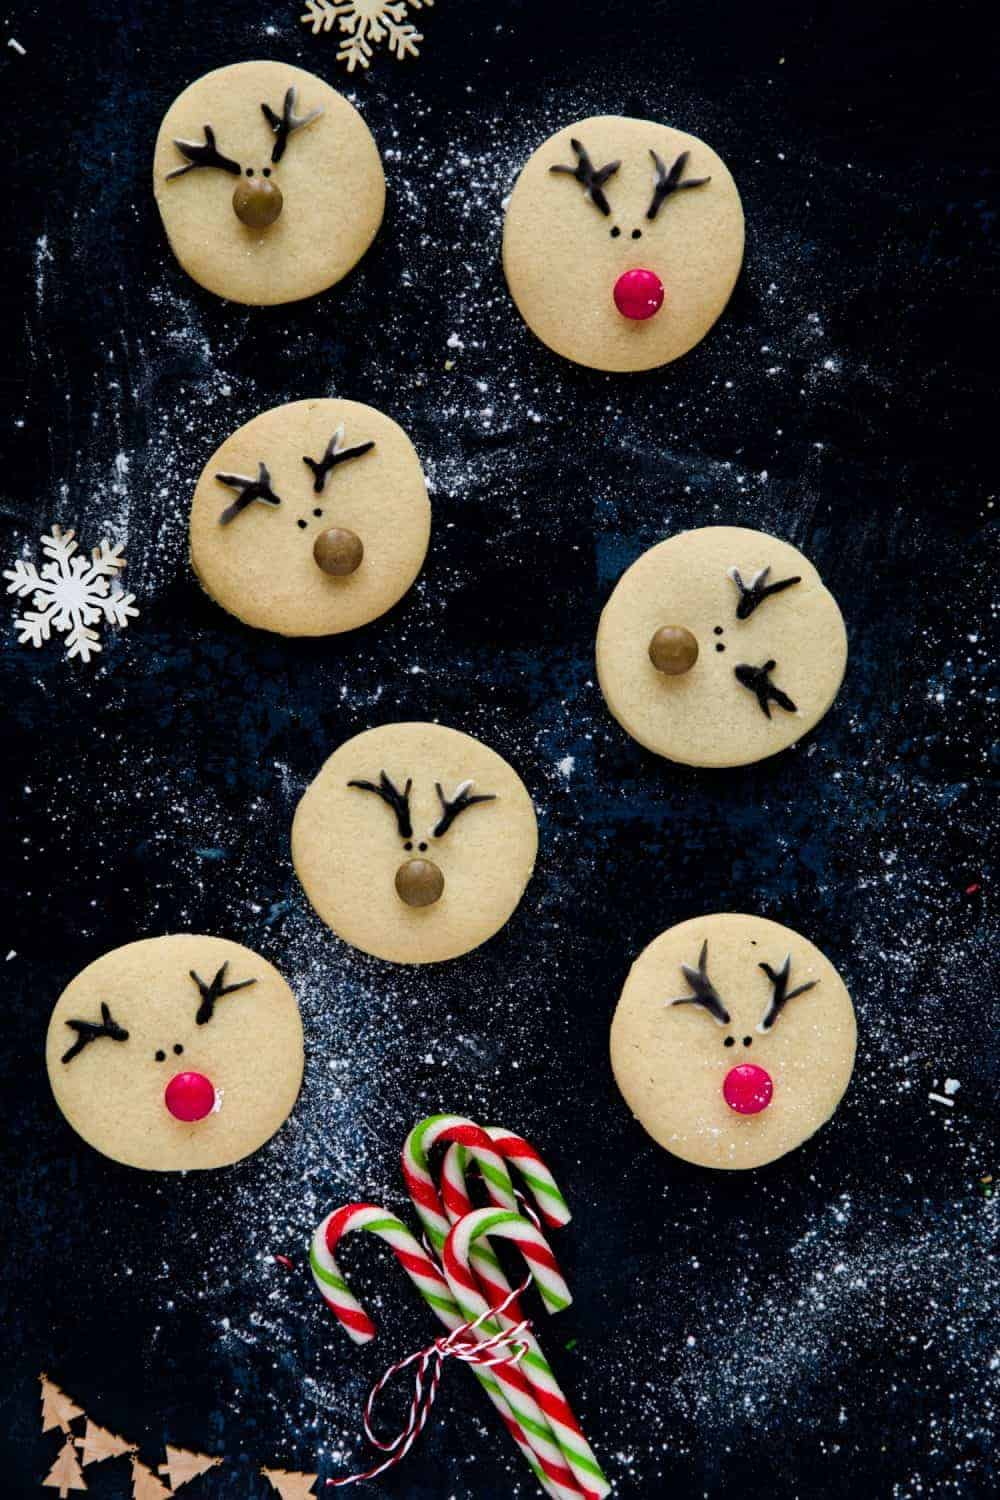 7 Reindeer biscuits on a dark background. The biscuits have icing piped antlers. 4 of the biscuits have a brown smartie for a nose and two have a red smartie.